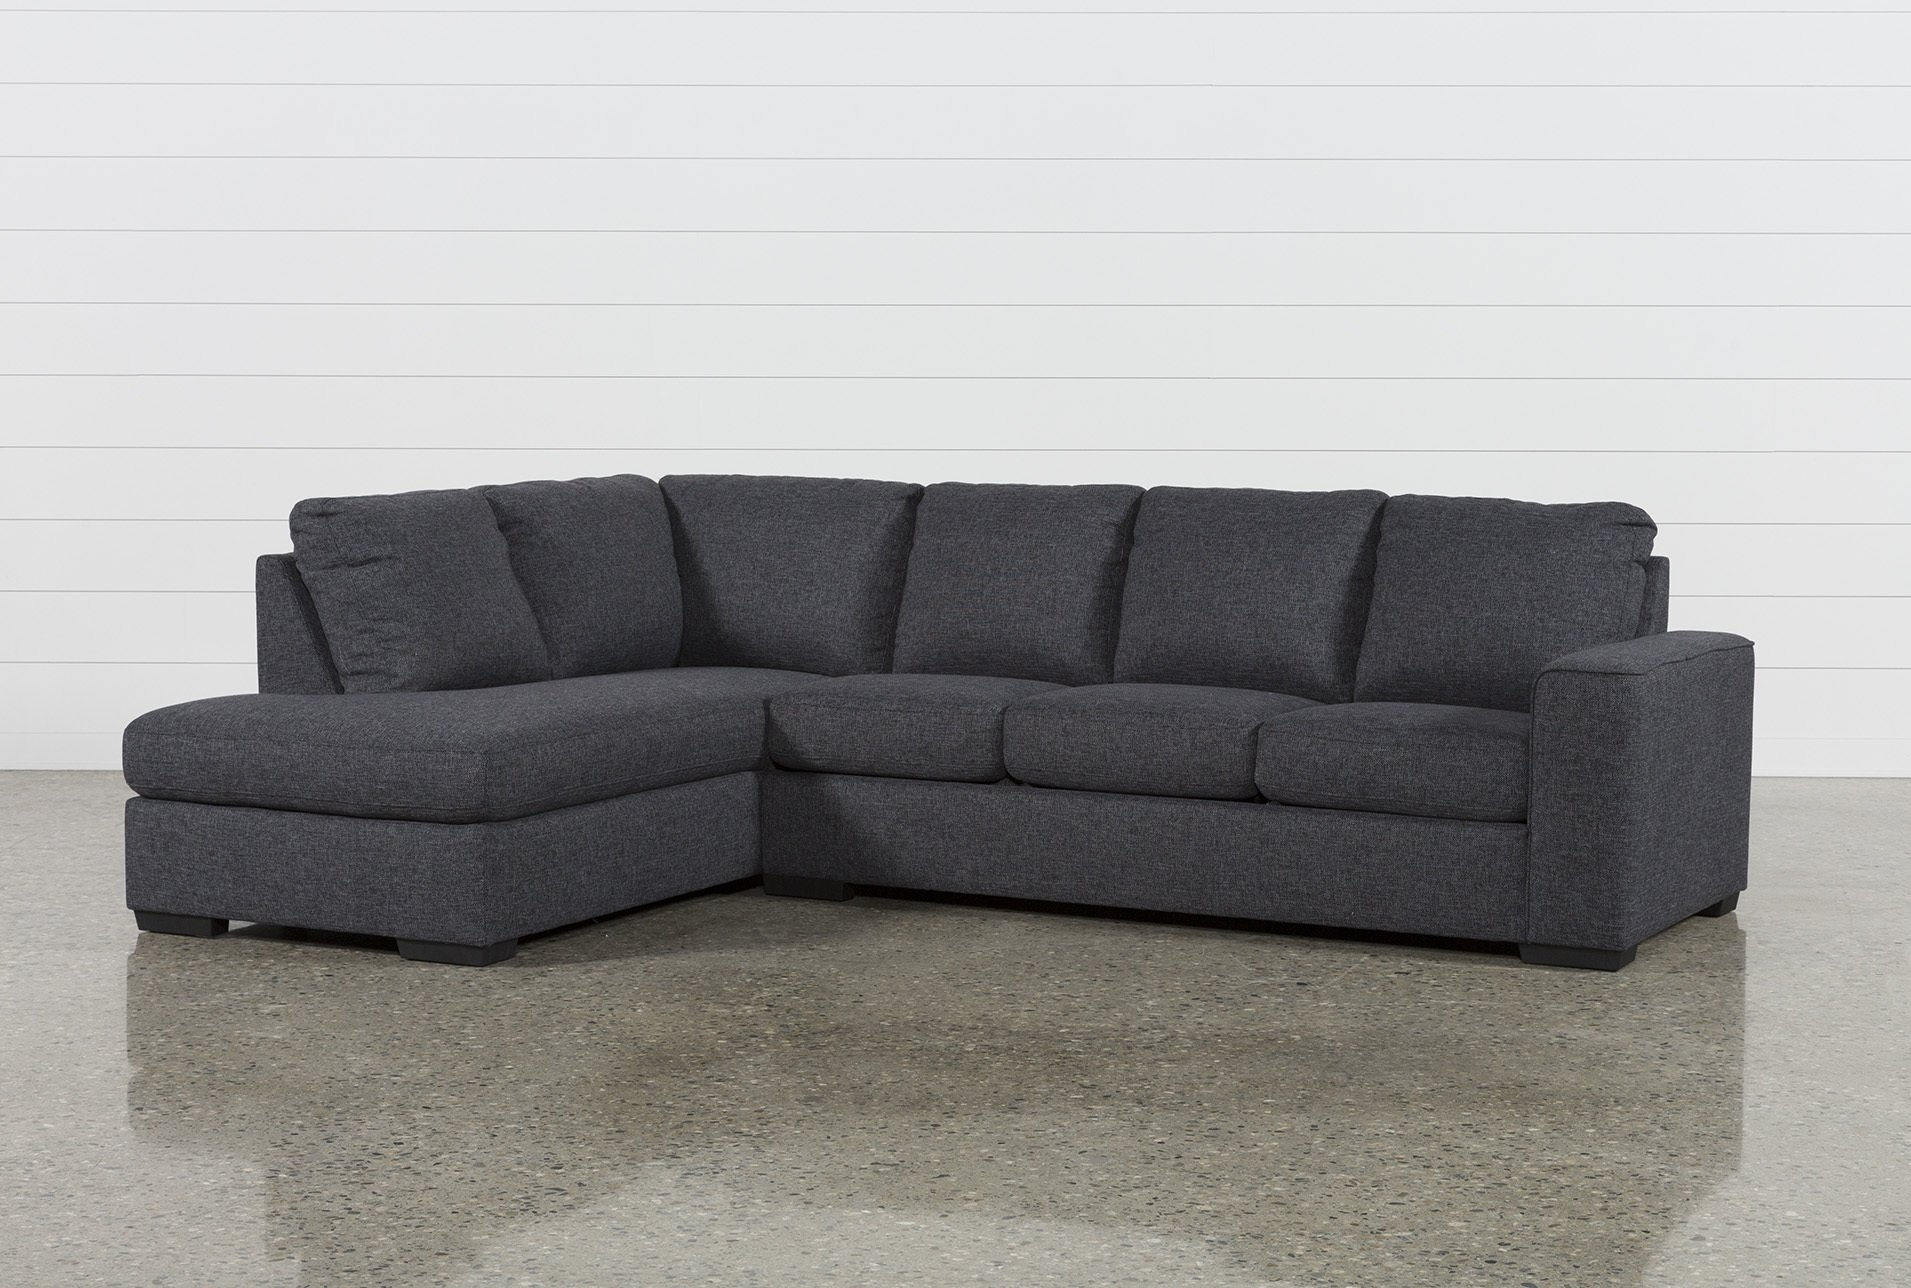 Lucy Dark Grey 2 Piece Sectional W/laf Chaise | Dark Grey And Products In Malbry Point 3 Piece Sectionals With Laf Chaise (View 4 of 30)